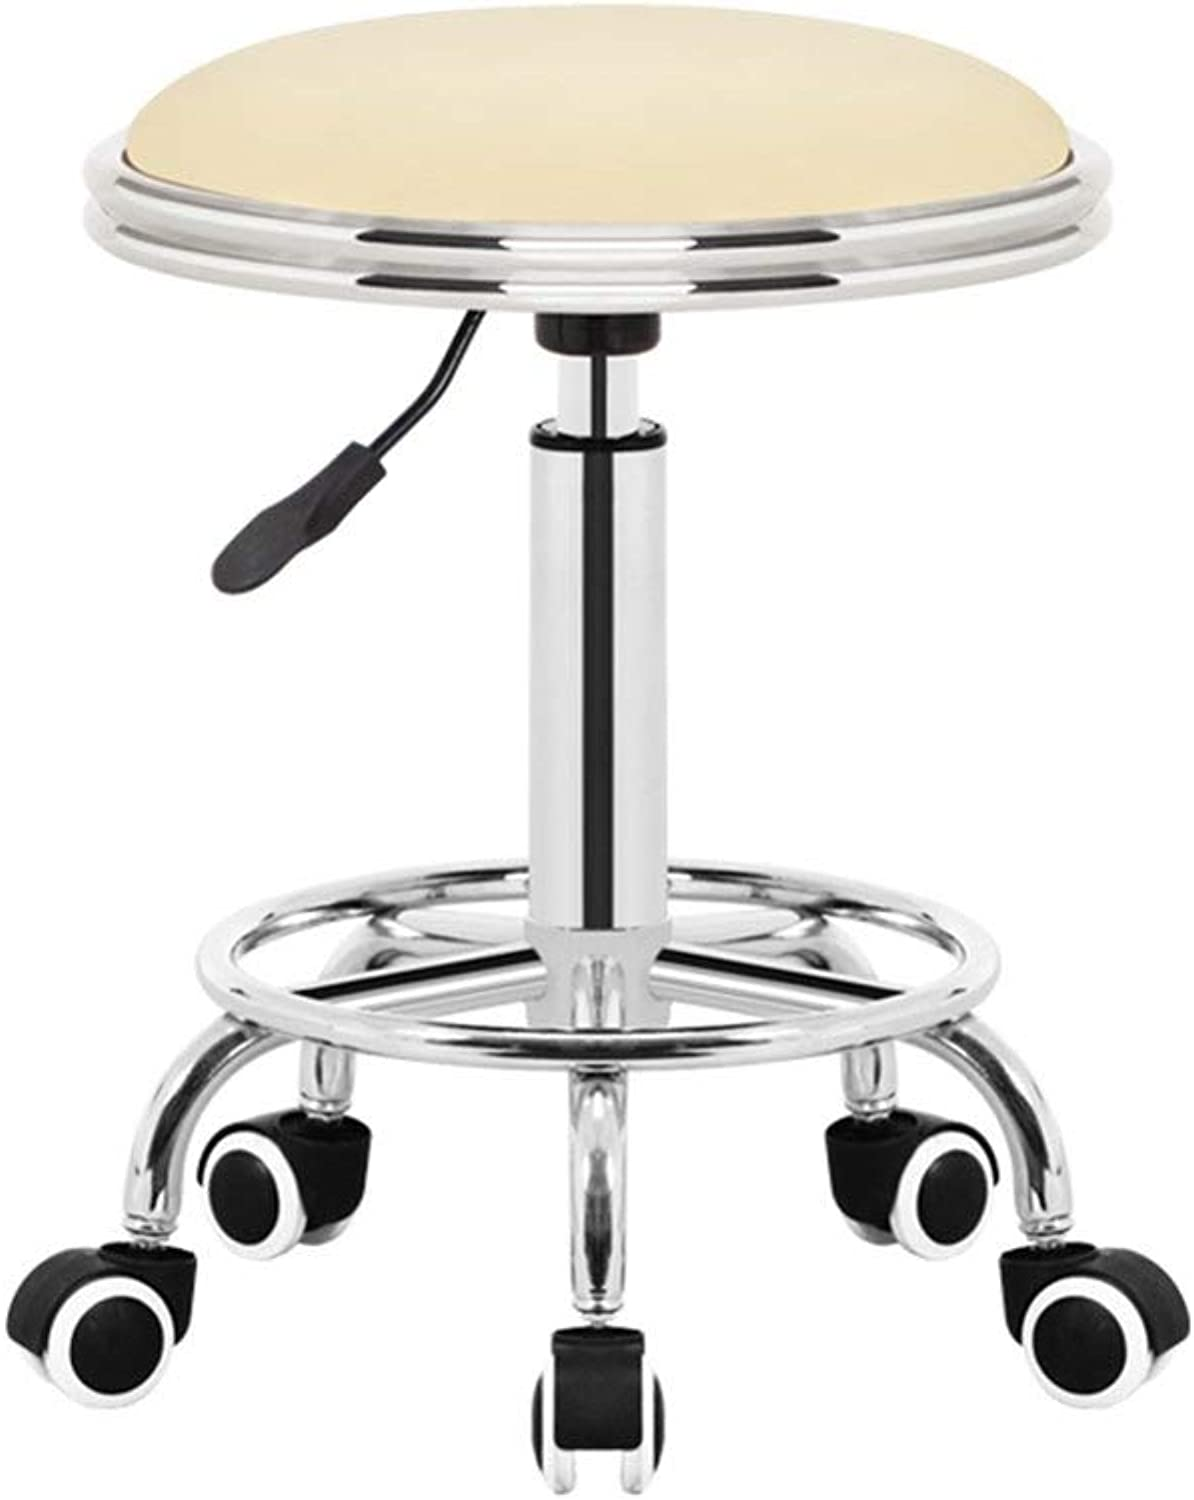 Bar Chair, Work Stool Makeup Stool Beauty Salon Stool Can Be redated Decorative Stool Creative Dining Chair GMING (color   Creamy-White)